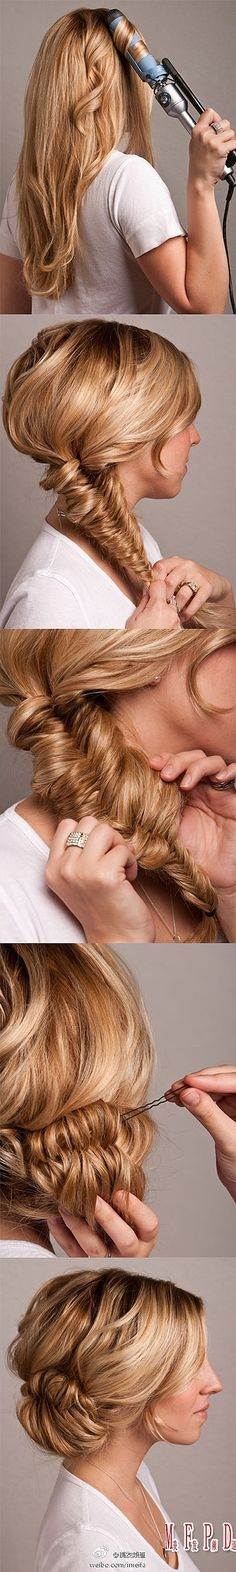 Fishtail side bun- really cant wait to try this on a bridesmaids or bride